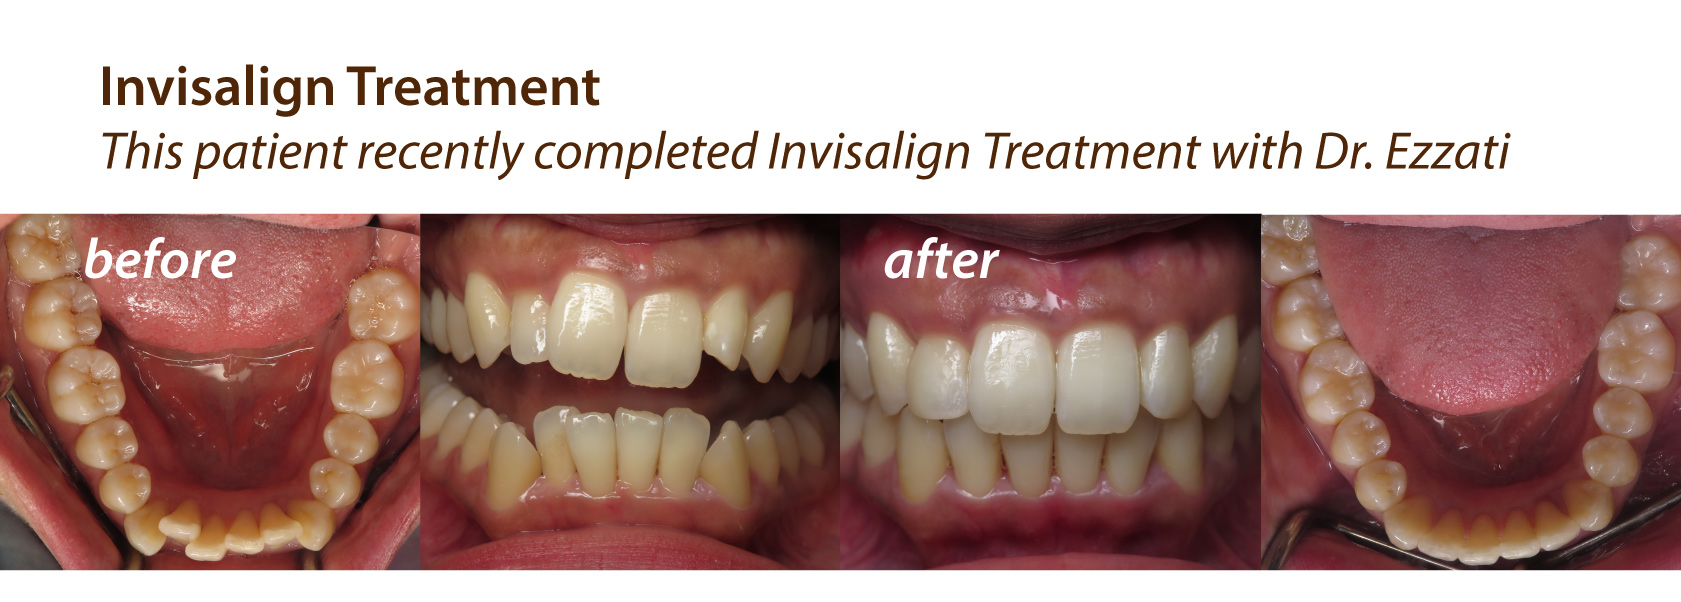 Before & After Invisalign at Olympic Village Dental